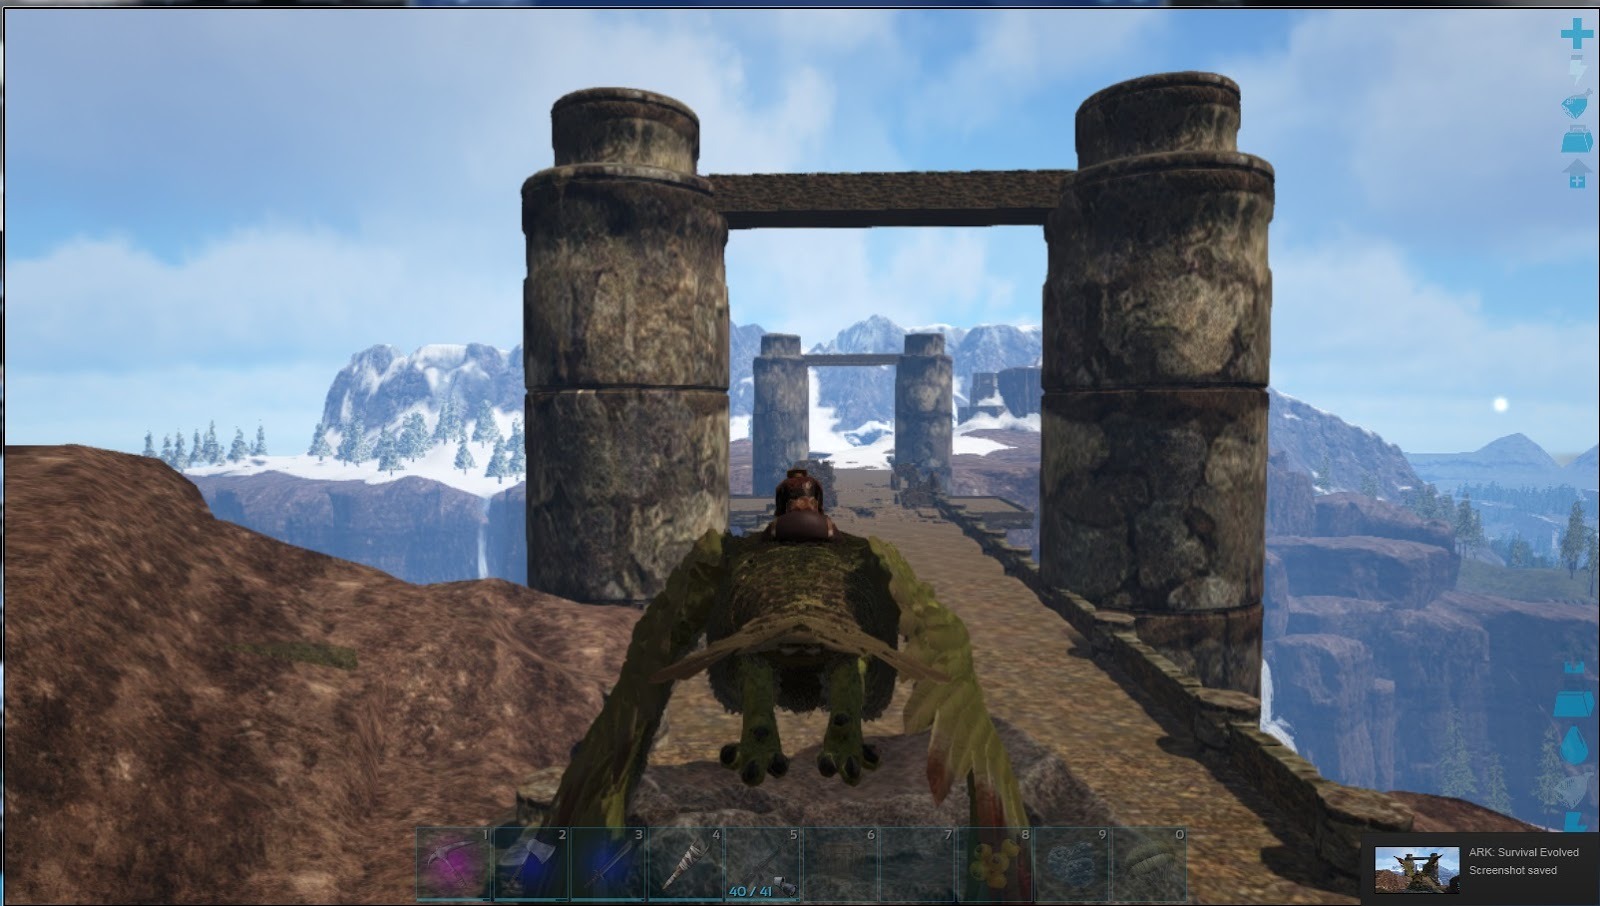 Sl Newser Other Grids Mmos And Games Ark Survival Evolved Update New Map New Version And Lots Of Mods Best location and easiest way to farm silica/black pearls. ark survival evolved update